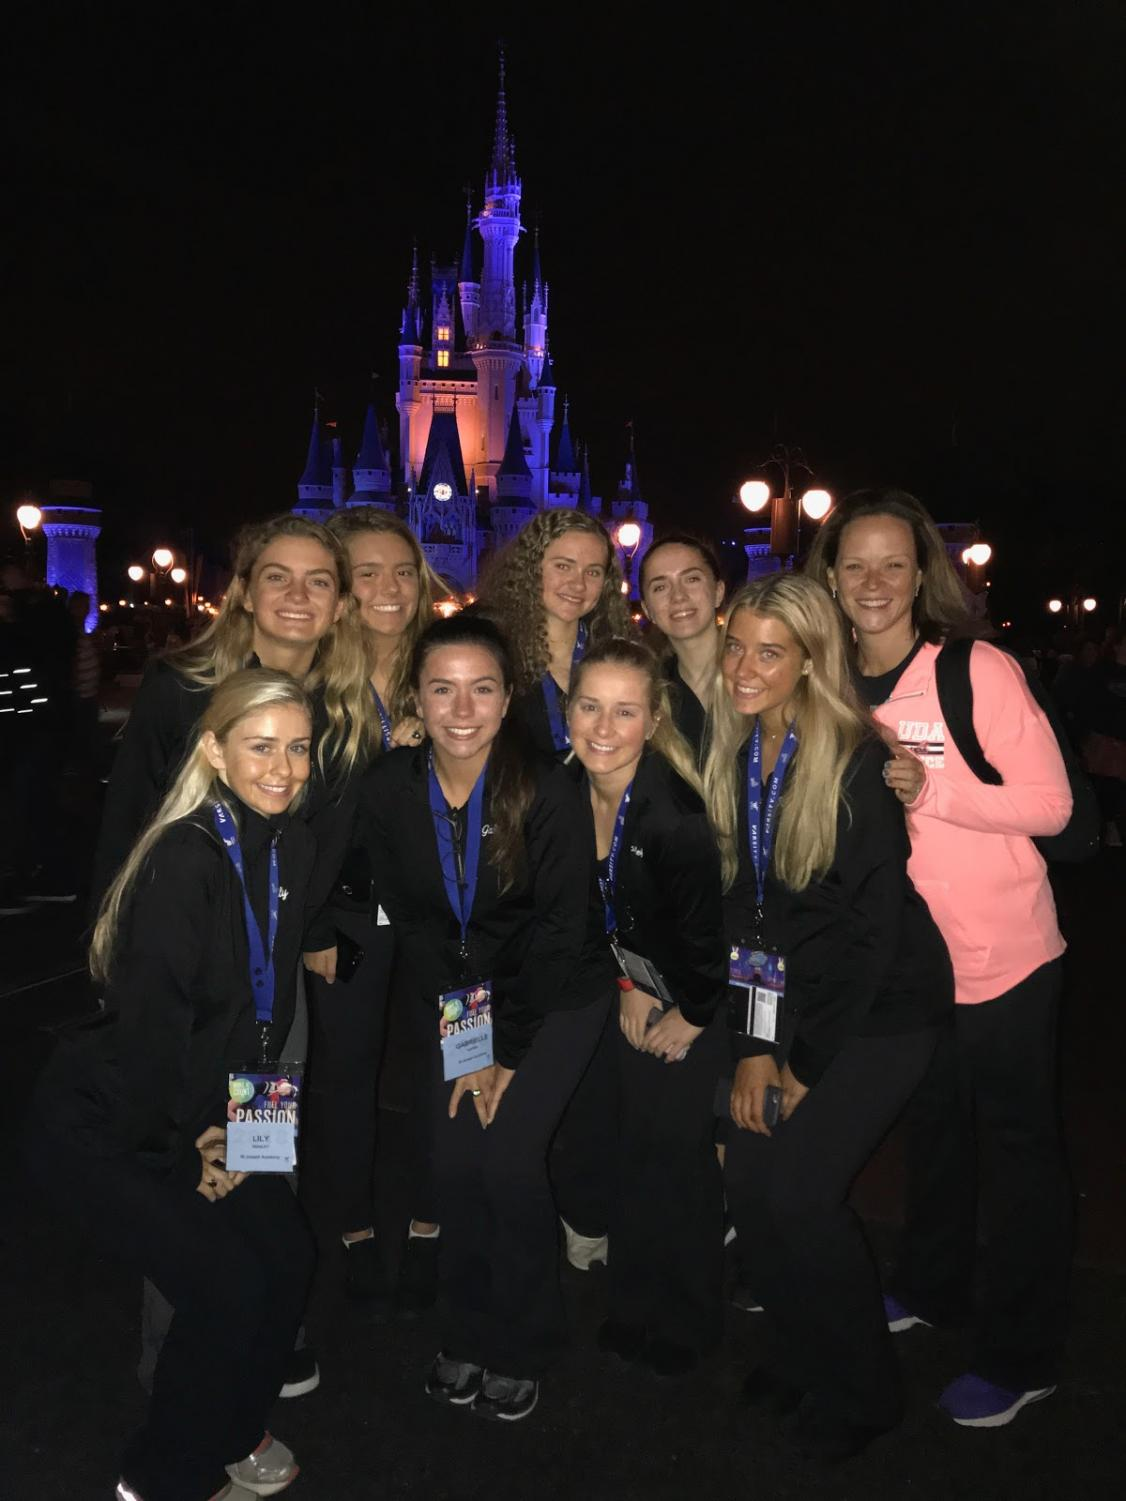 The team poses in front of Cinderella's Castle.